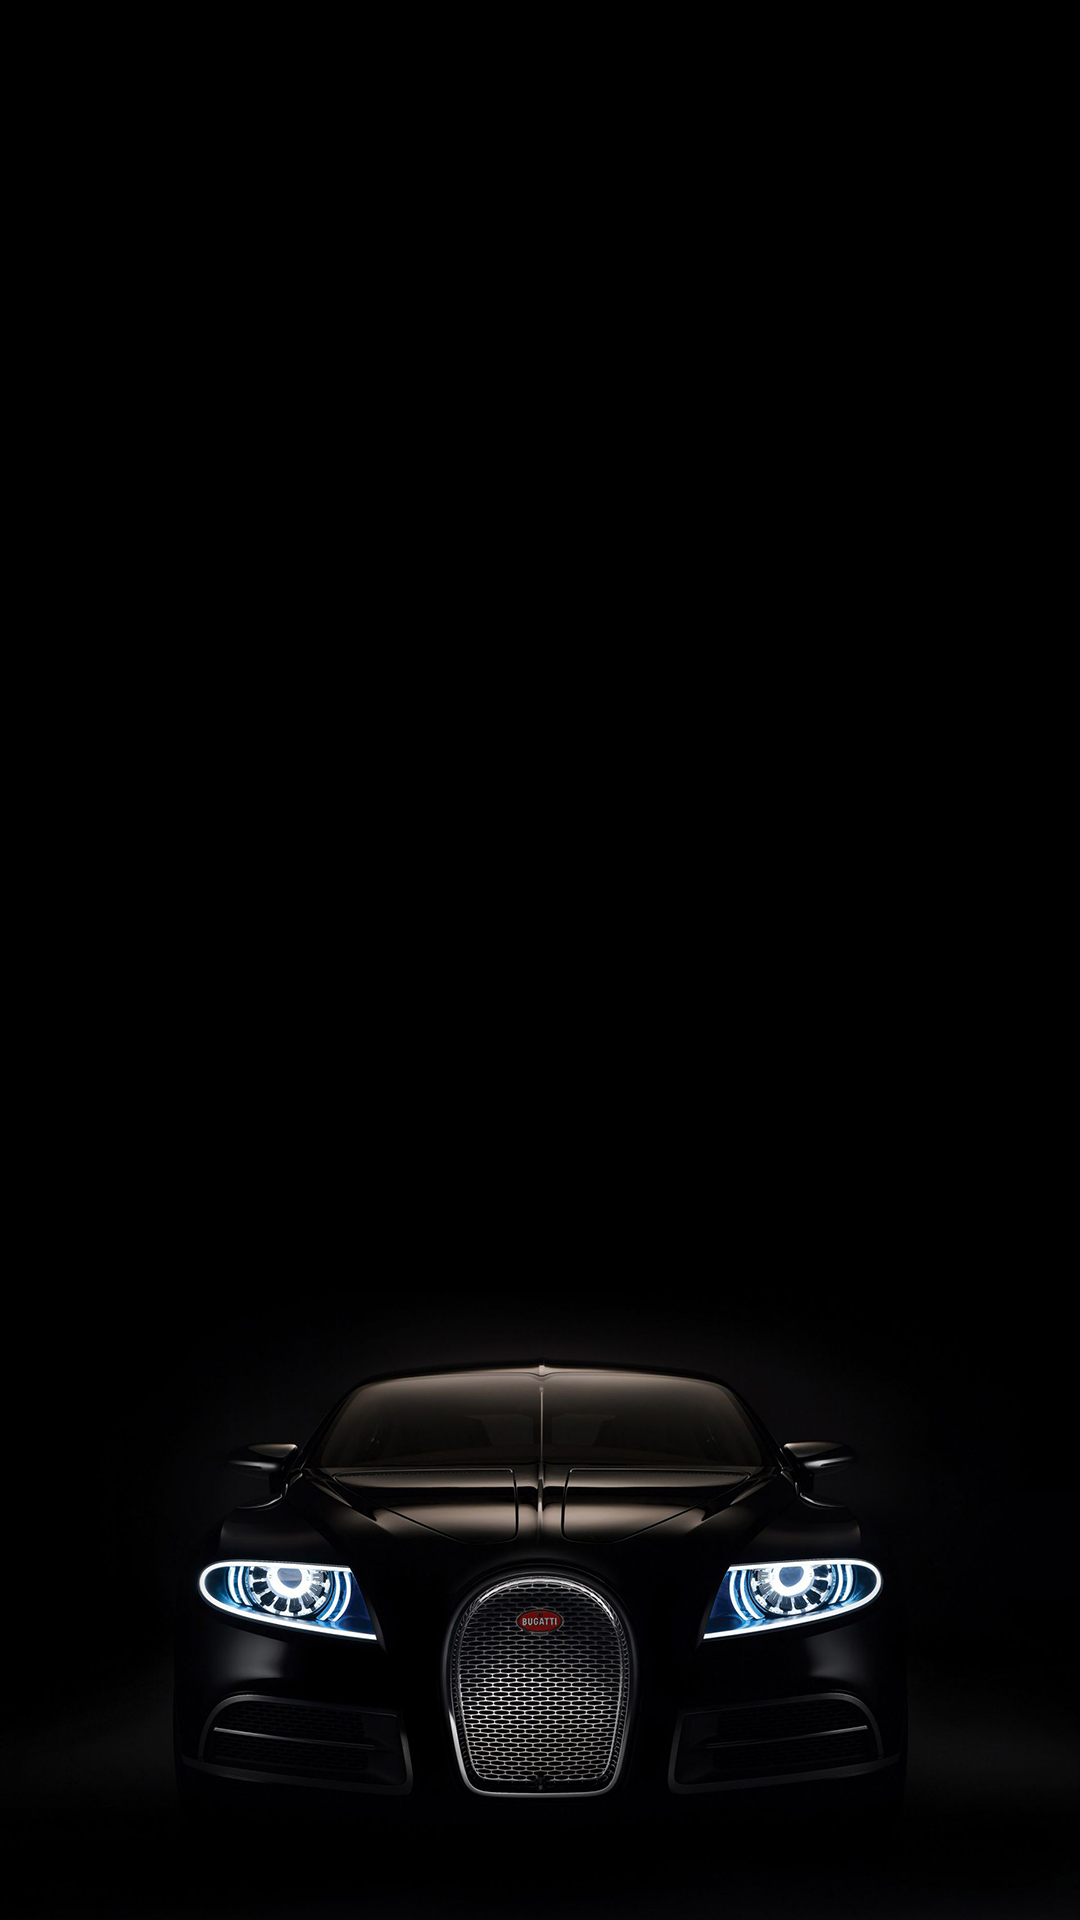 Ultra Hd Black Bugati Wallpaper For Your Mobile Phone 0033